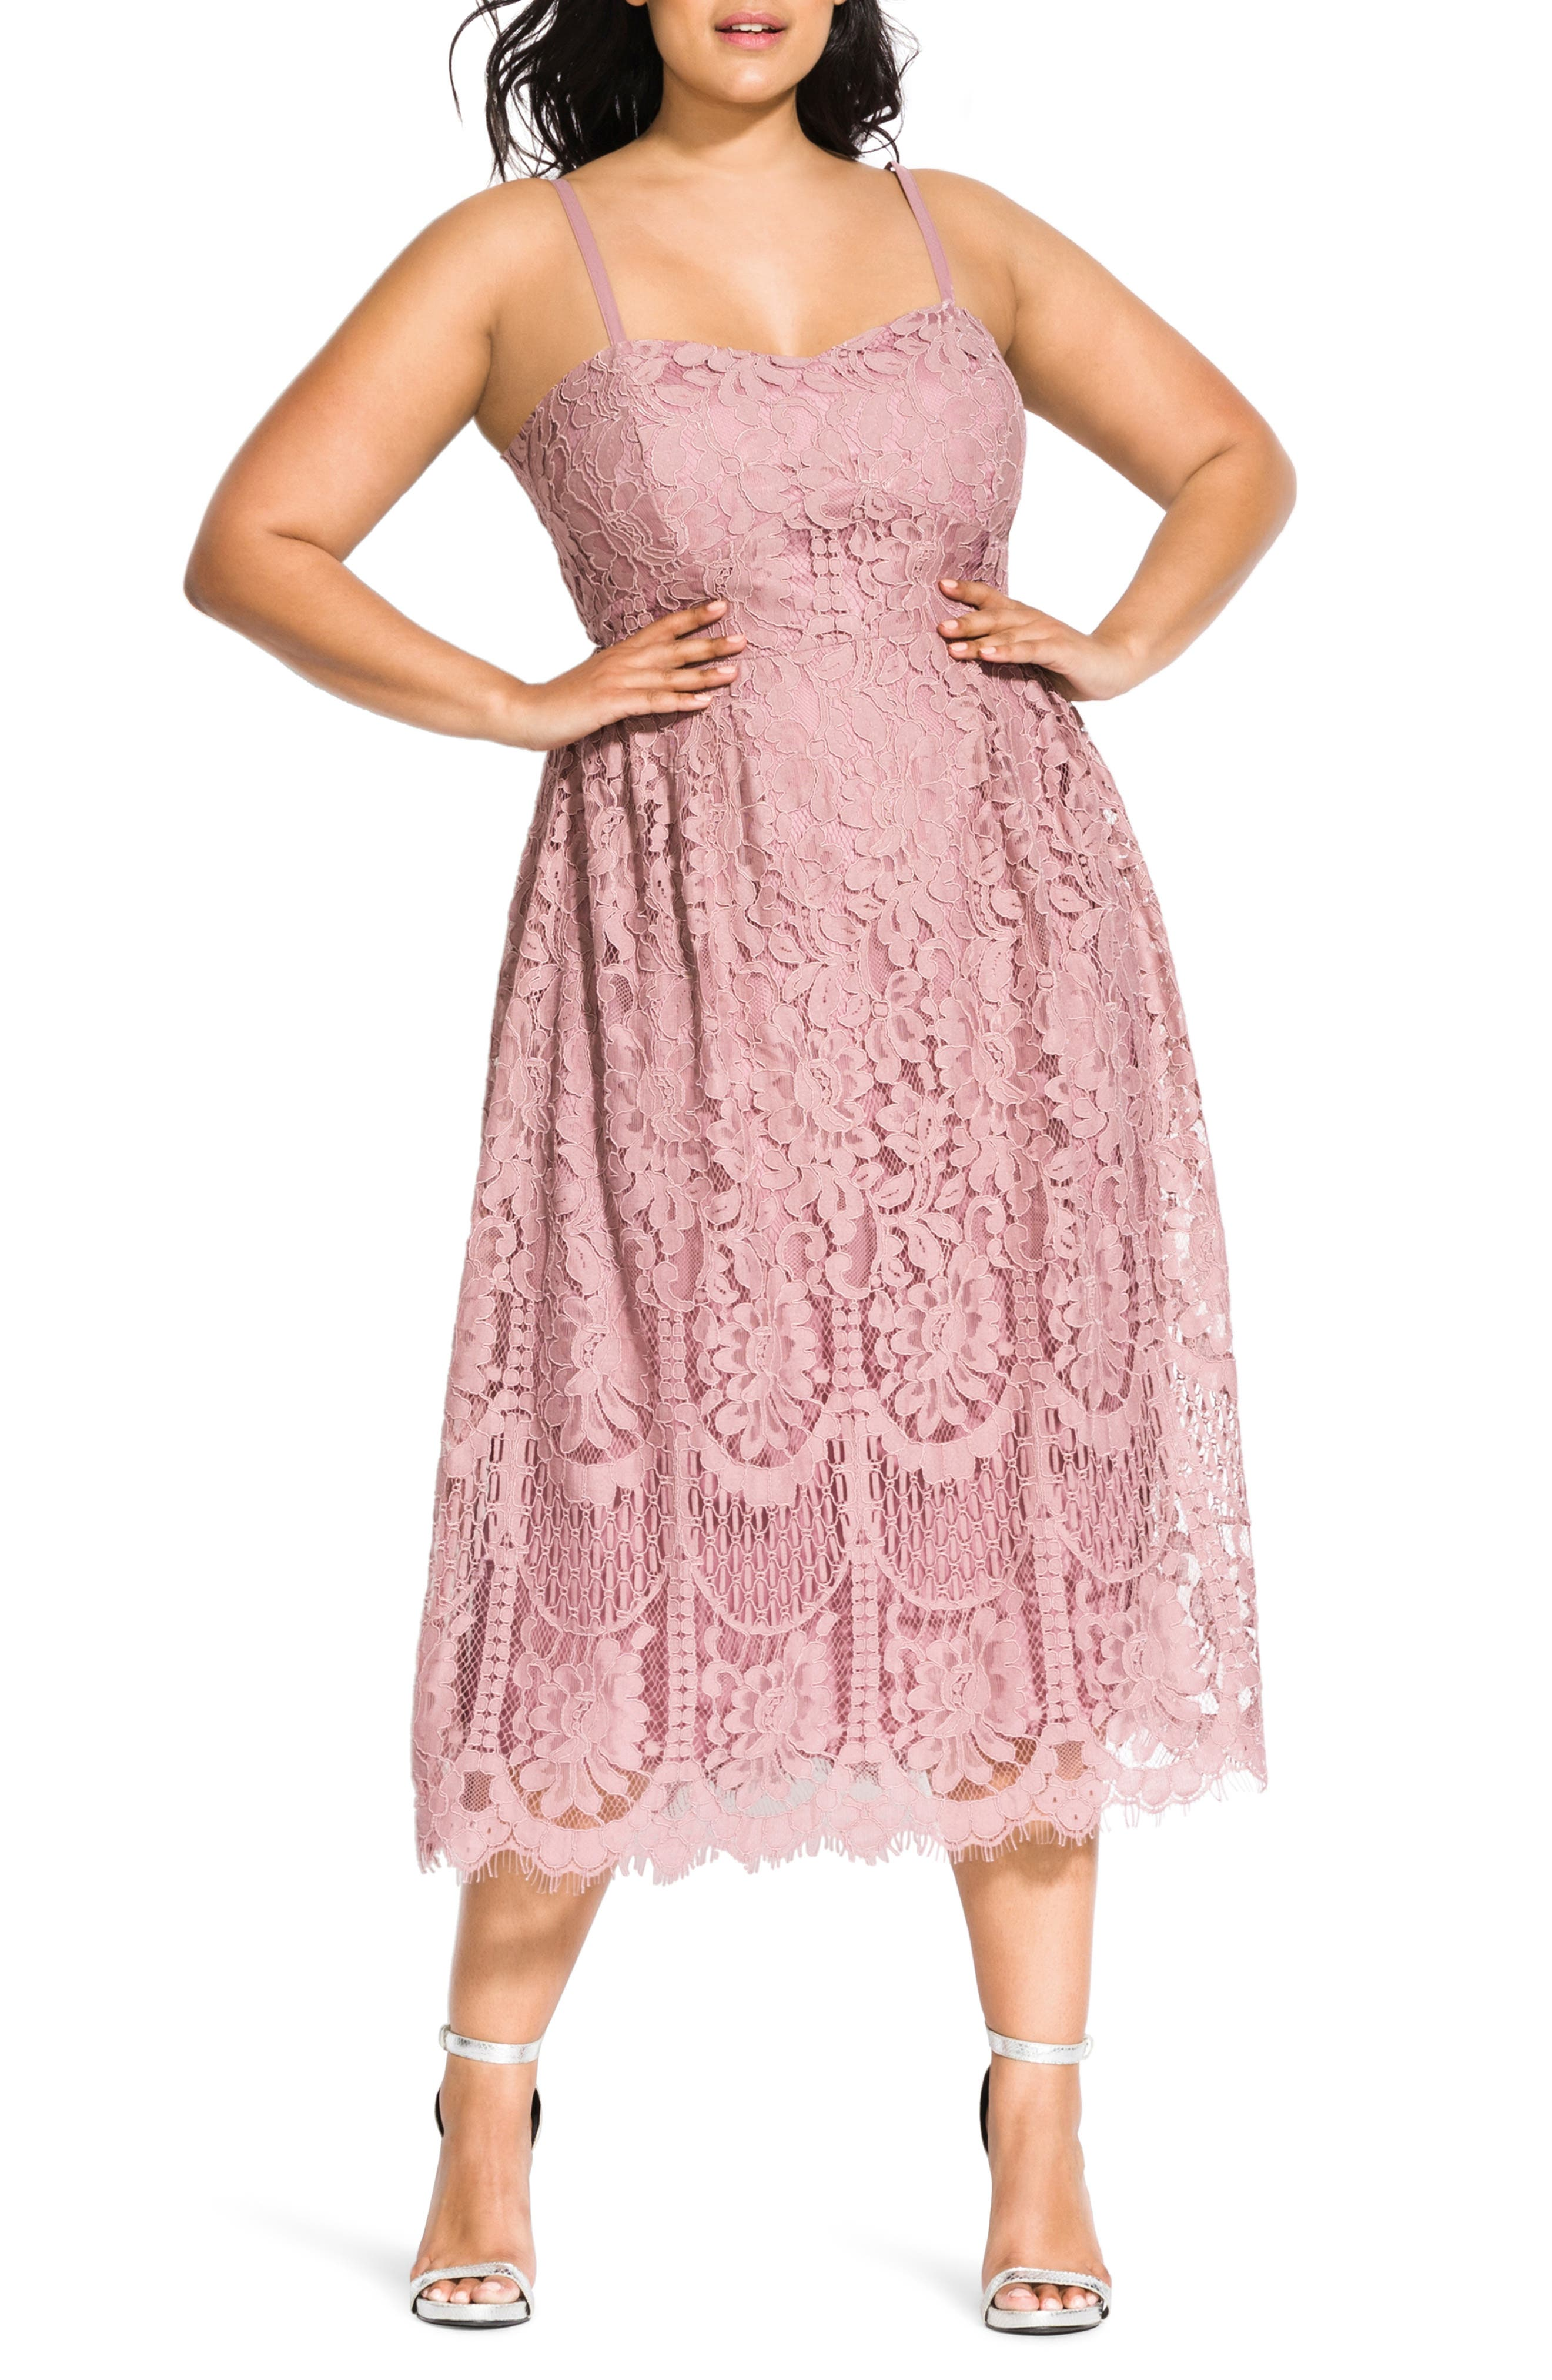 1950s Cocktail Dresses, Party Dresses Plus Size Womens City Chic Sweet Darling Lace Cocktail Dress Size Small - Pink $129.00 AT vintagedancer.com